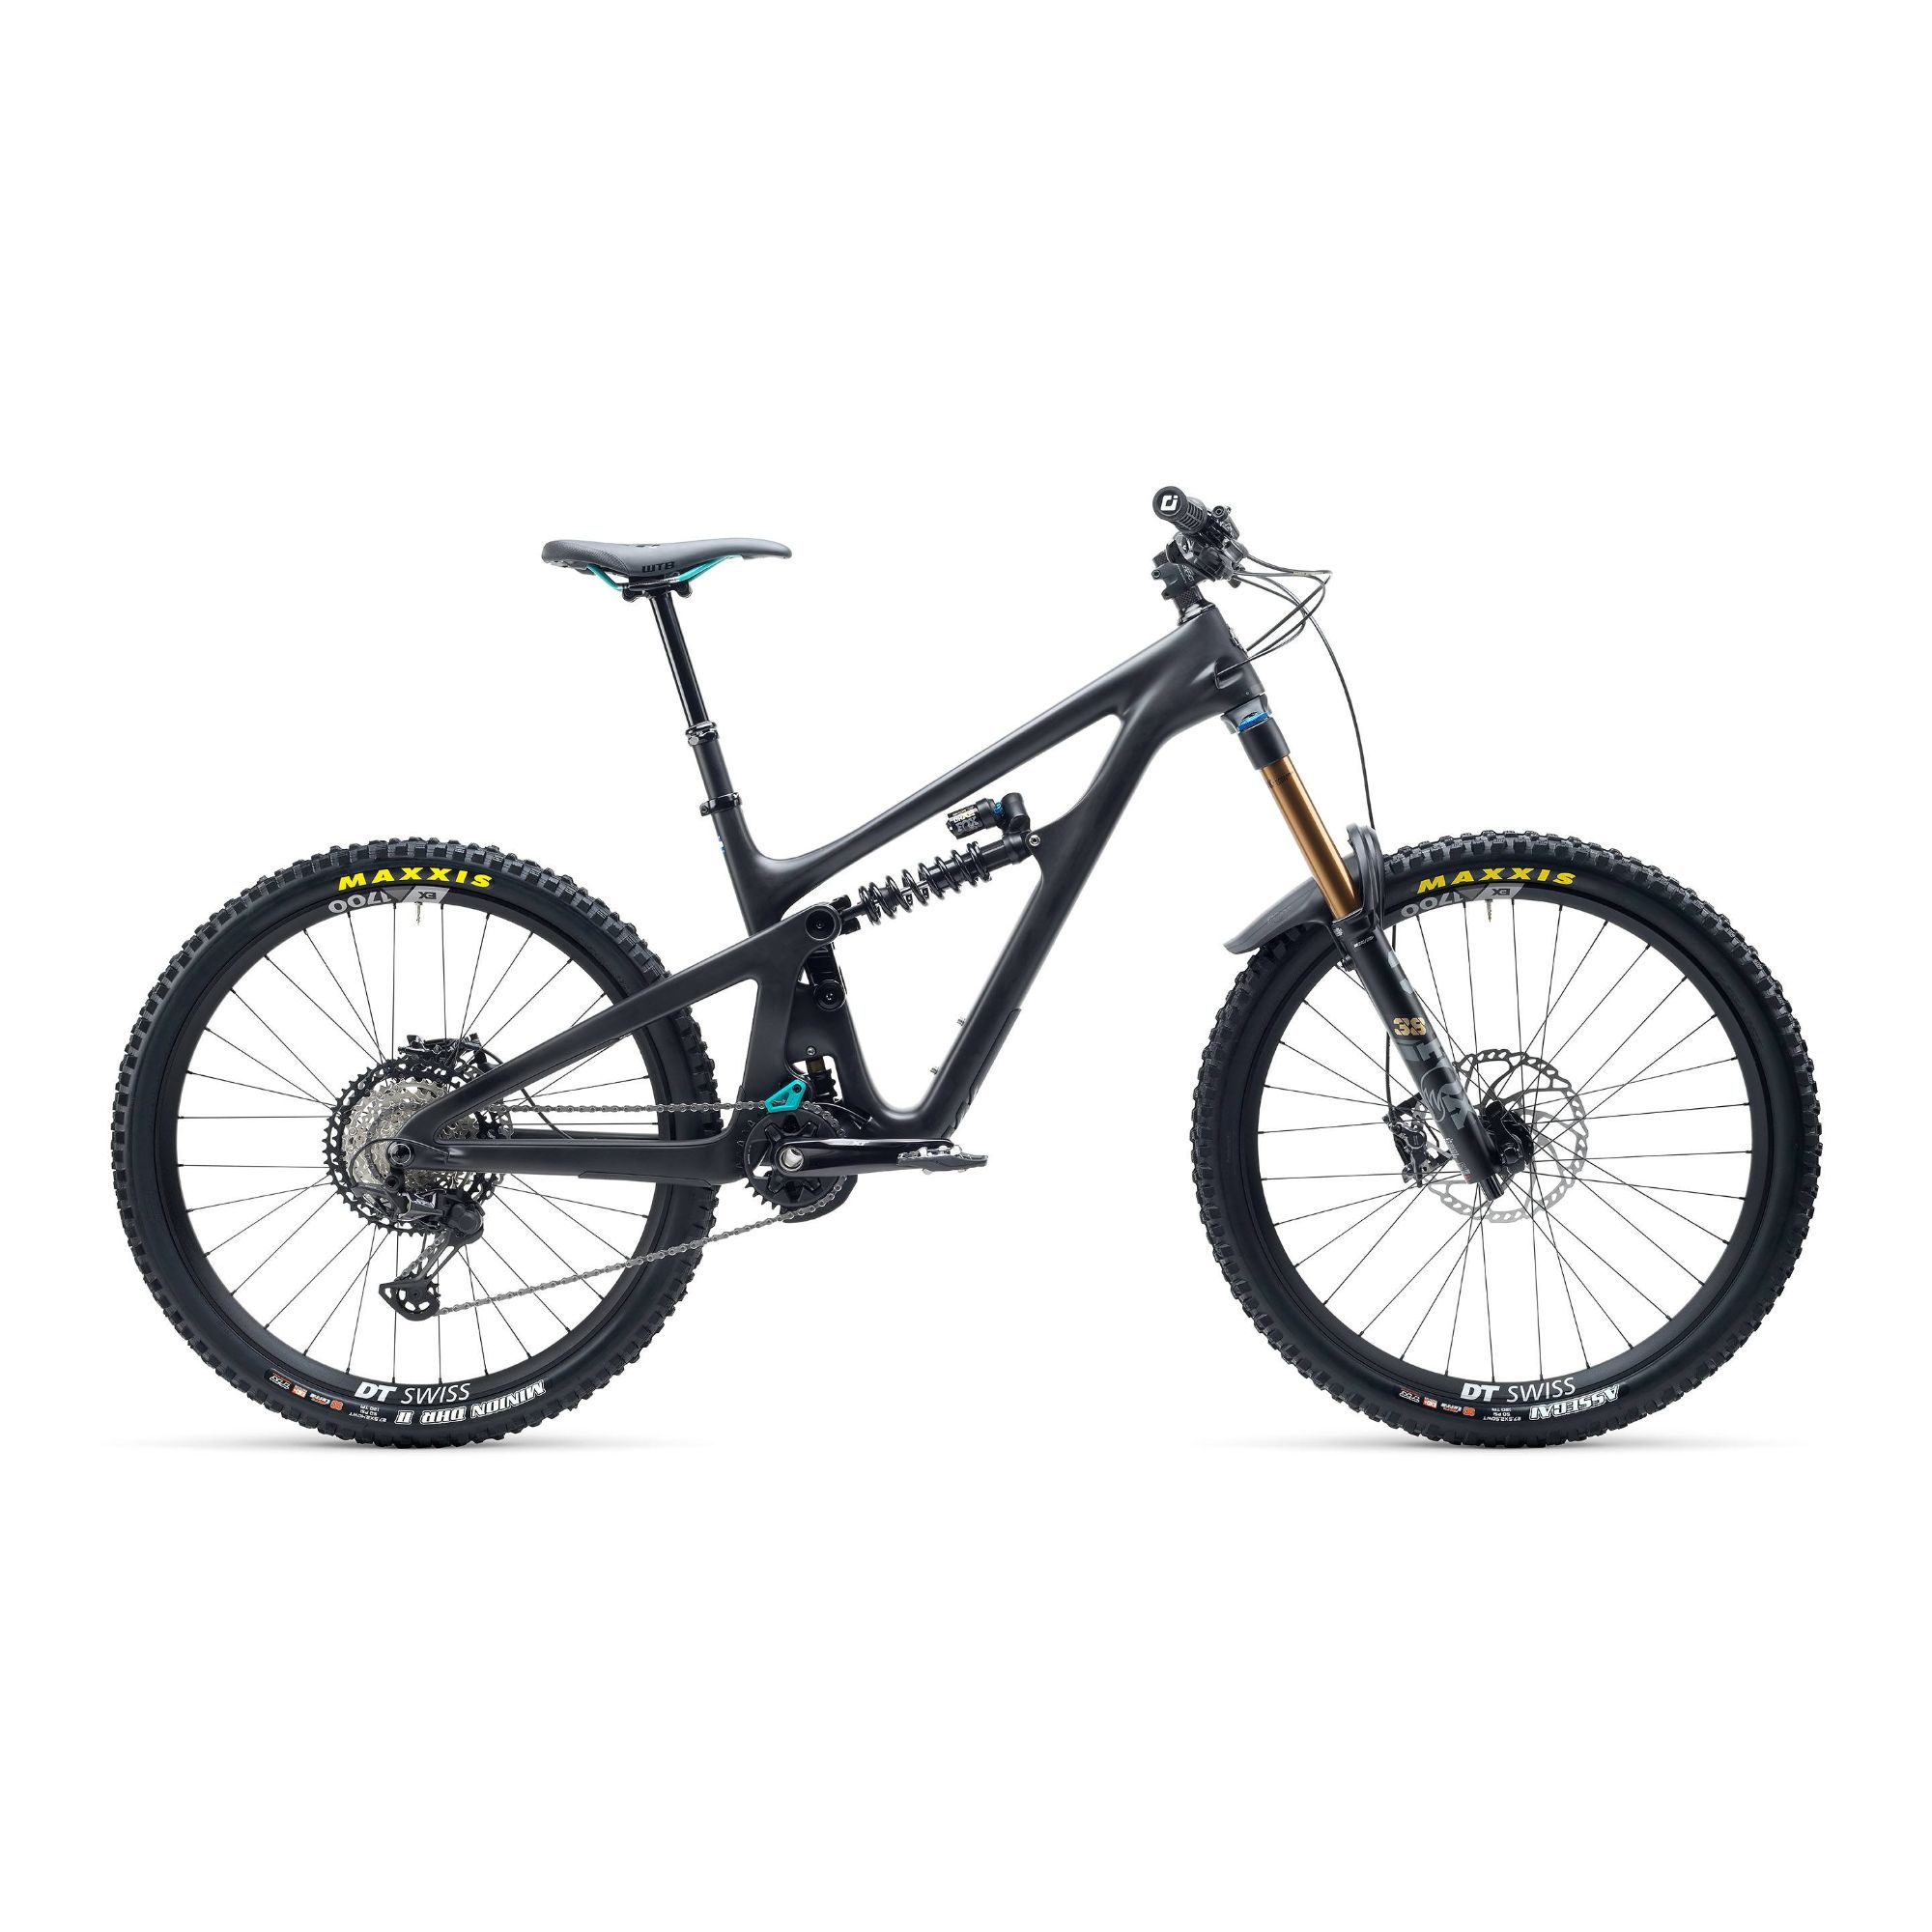 Yeti SB165 T Series T1 27.5 XT Carbon Mountain Bike 2021 Raw / Grey